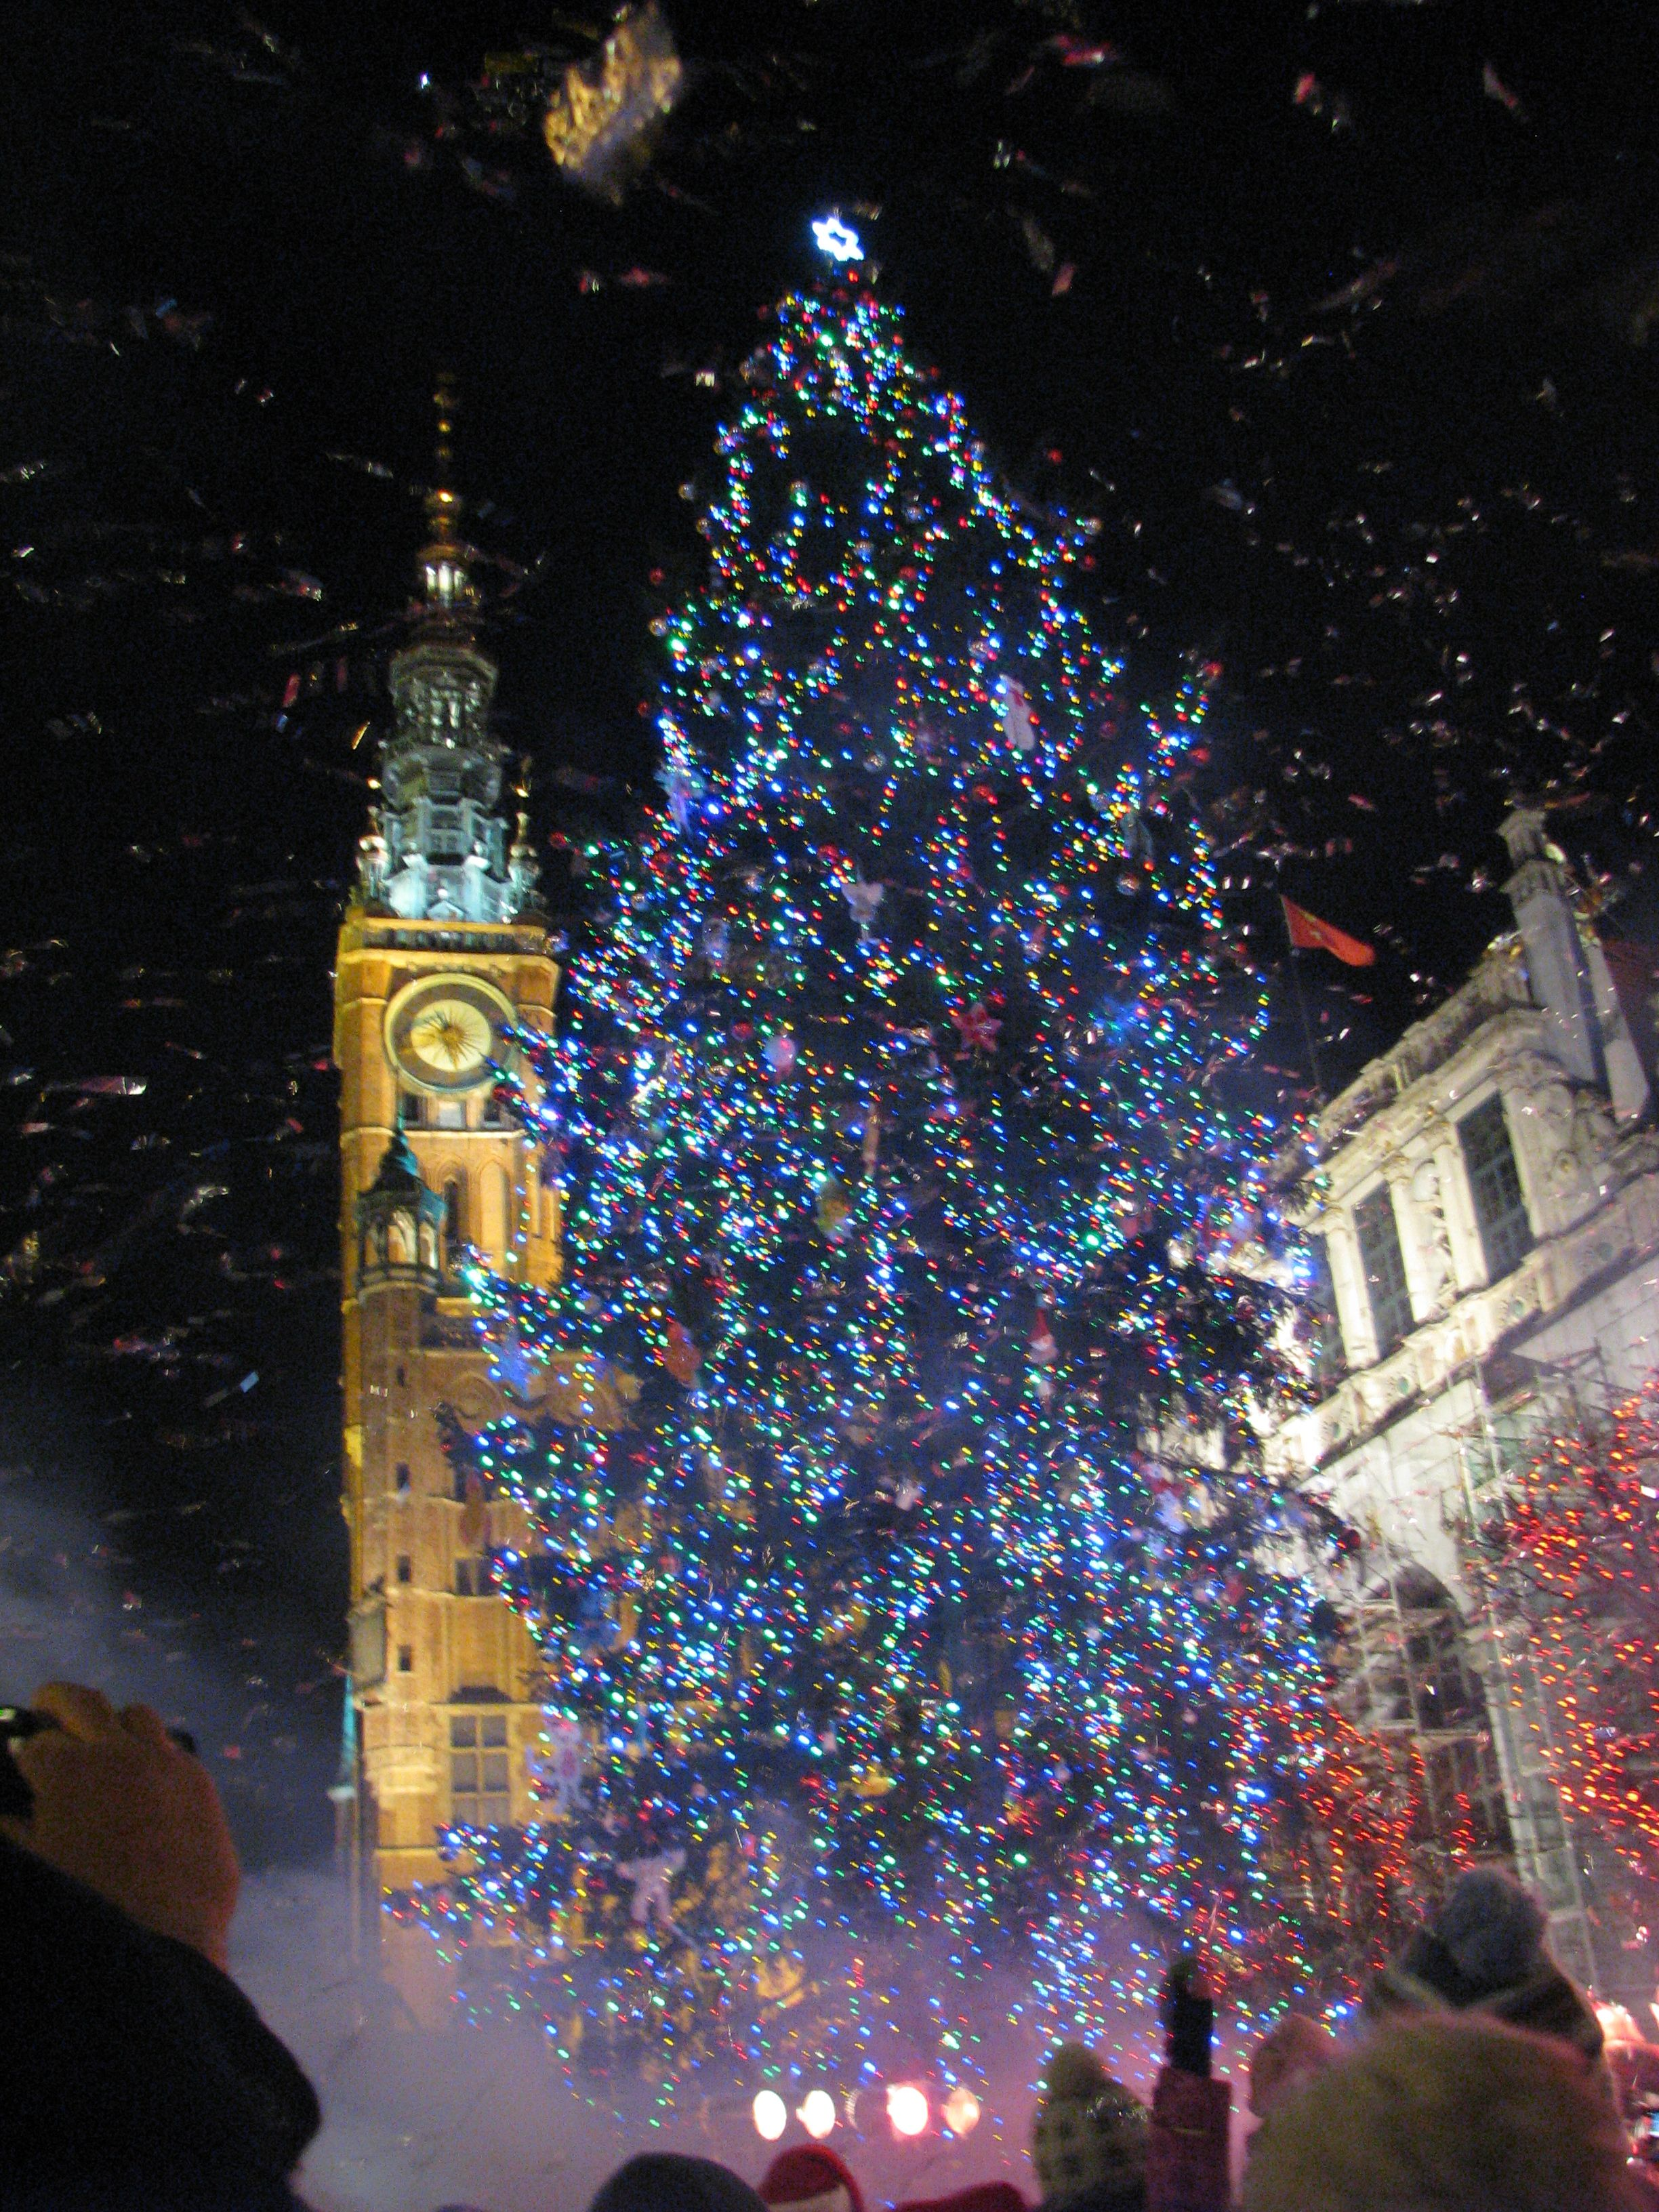 #christmas tree in #Gdansk | Poland photo: Radek Selonka i Ola Leszczyńska